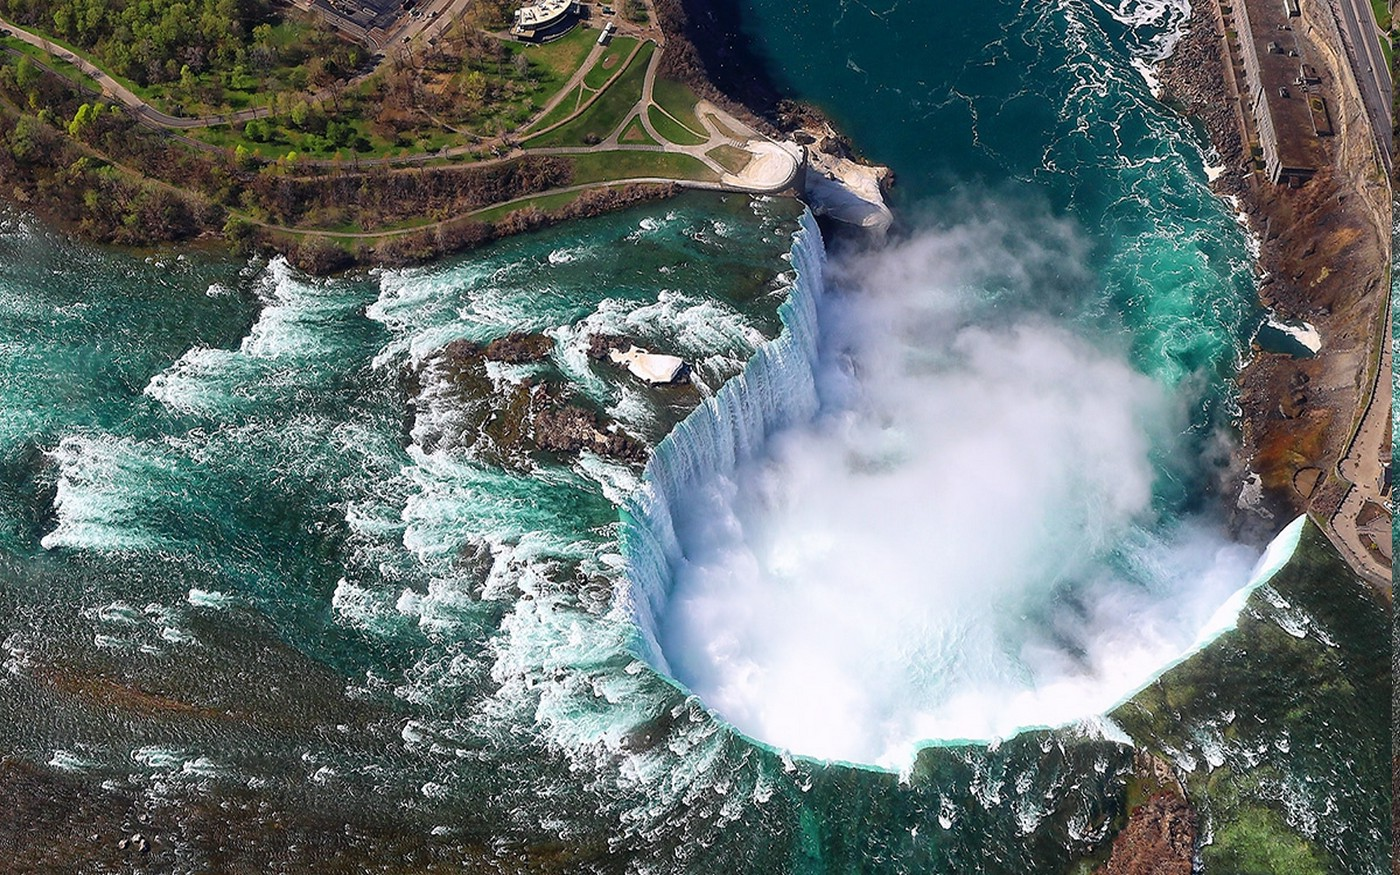 Angel Falls Hd Wallpaper Landscape Nature Aerial View Niagara Falls Canada